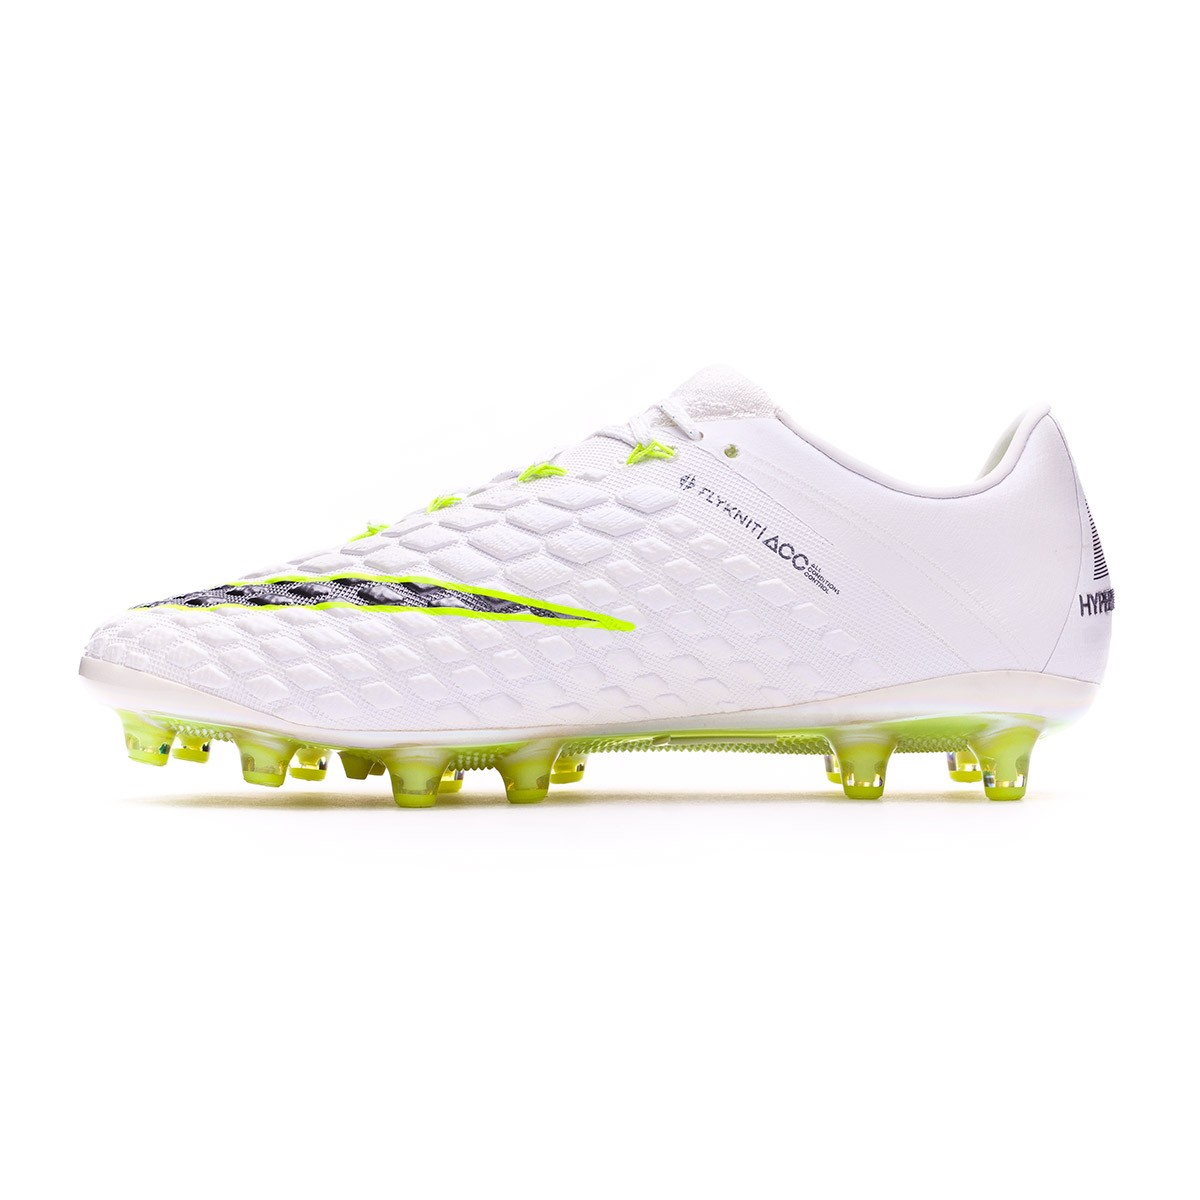 83b64e3f1e3 Football Boots Nike Hypervenom Phantom III Elite AG-Pro White-Metallic cool  grey-Volt-Metallic cool g - Tienda de fútbol Fútbol Emotion